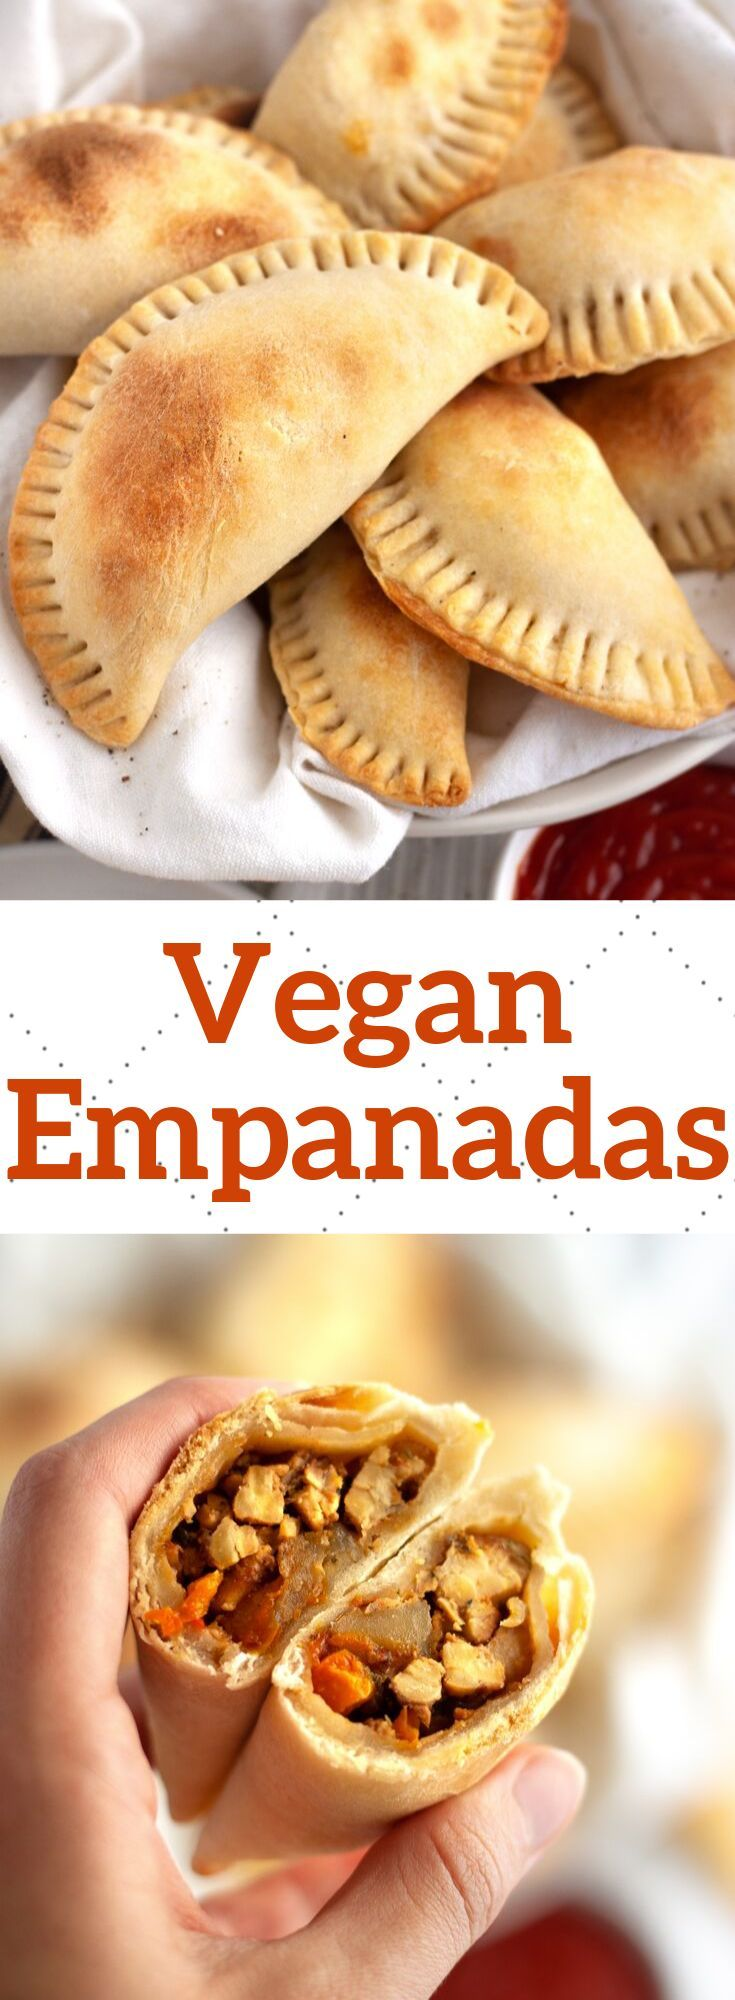 Baked and healthier crispy vegan empanada recipe filled with potatoes, peppers Baked and healthier crispy vegan empanada recipe filled with potatoes, peppers, ... -